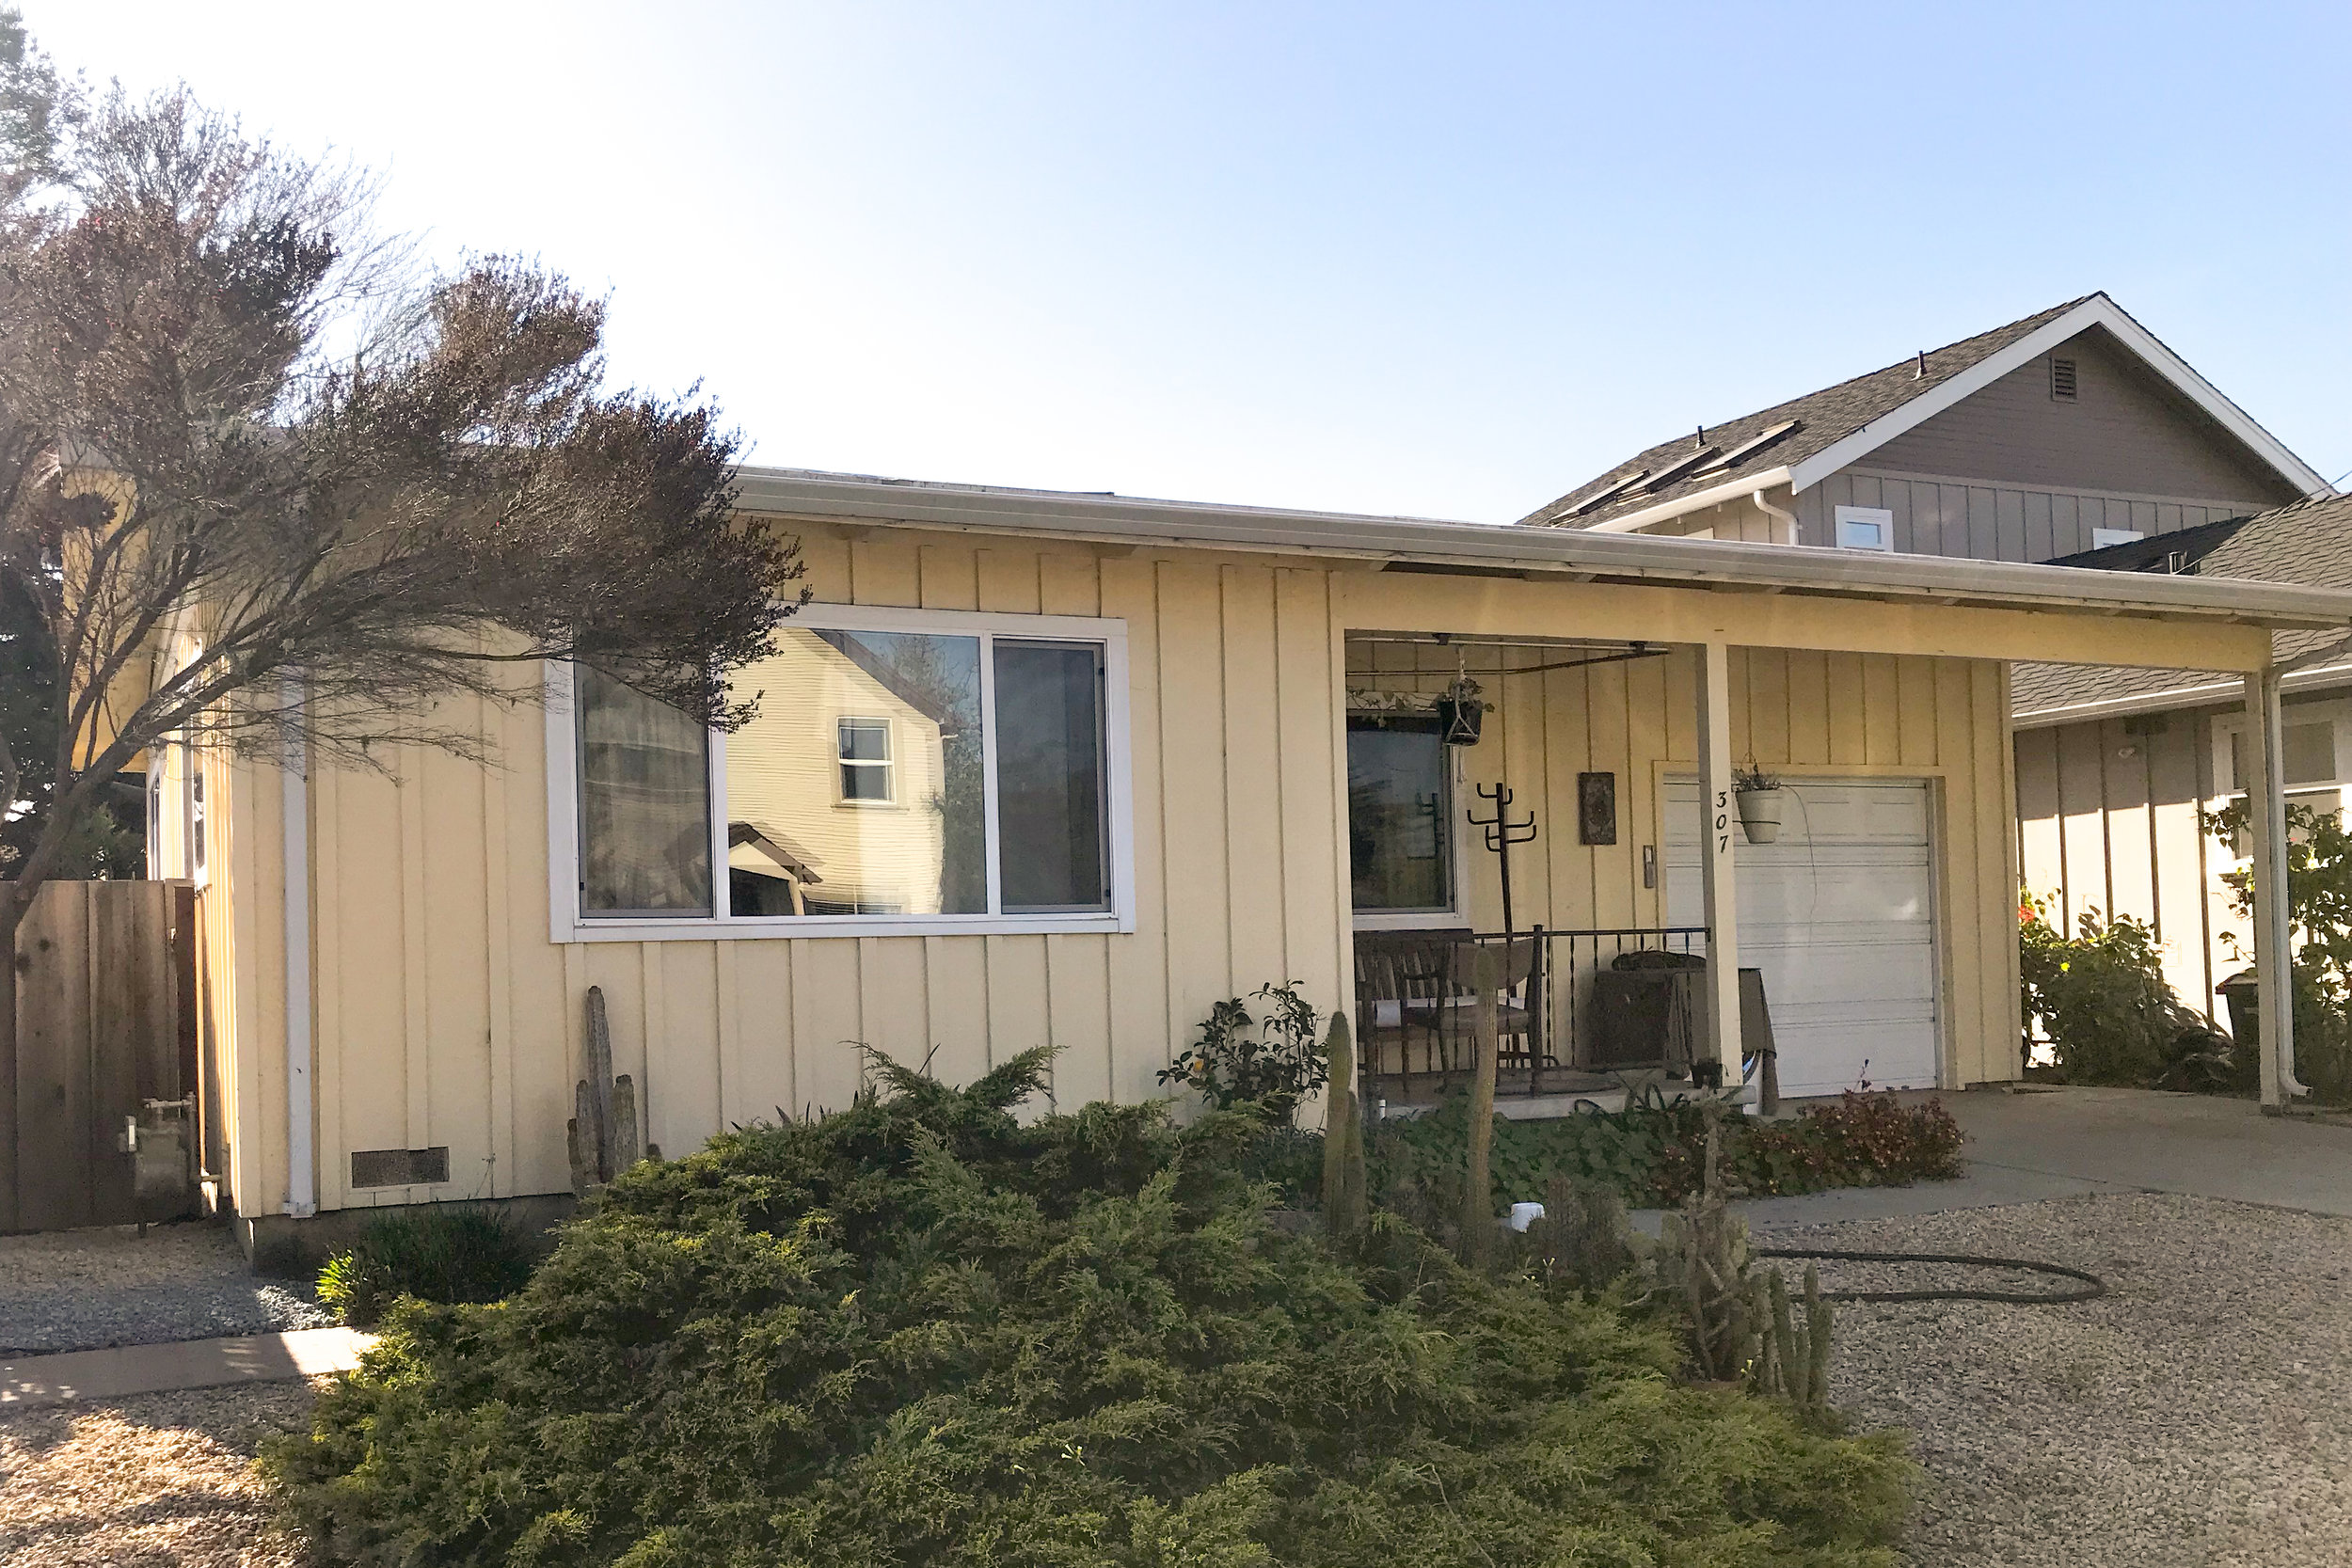 SOLD 307 Centennial St, Santa Cruz • $899,000  1 Bedroom, 1 Bathroom • 720 Sq. Ft.